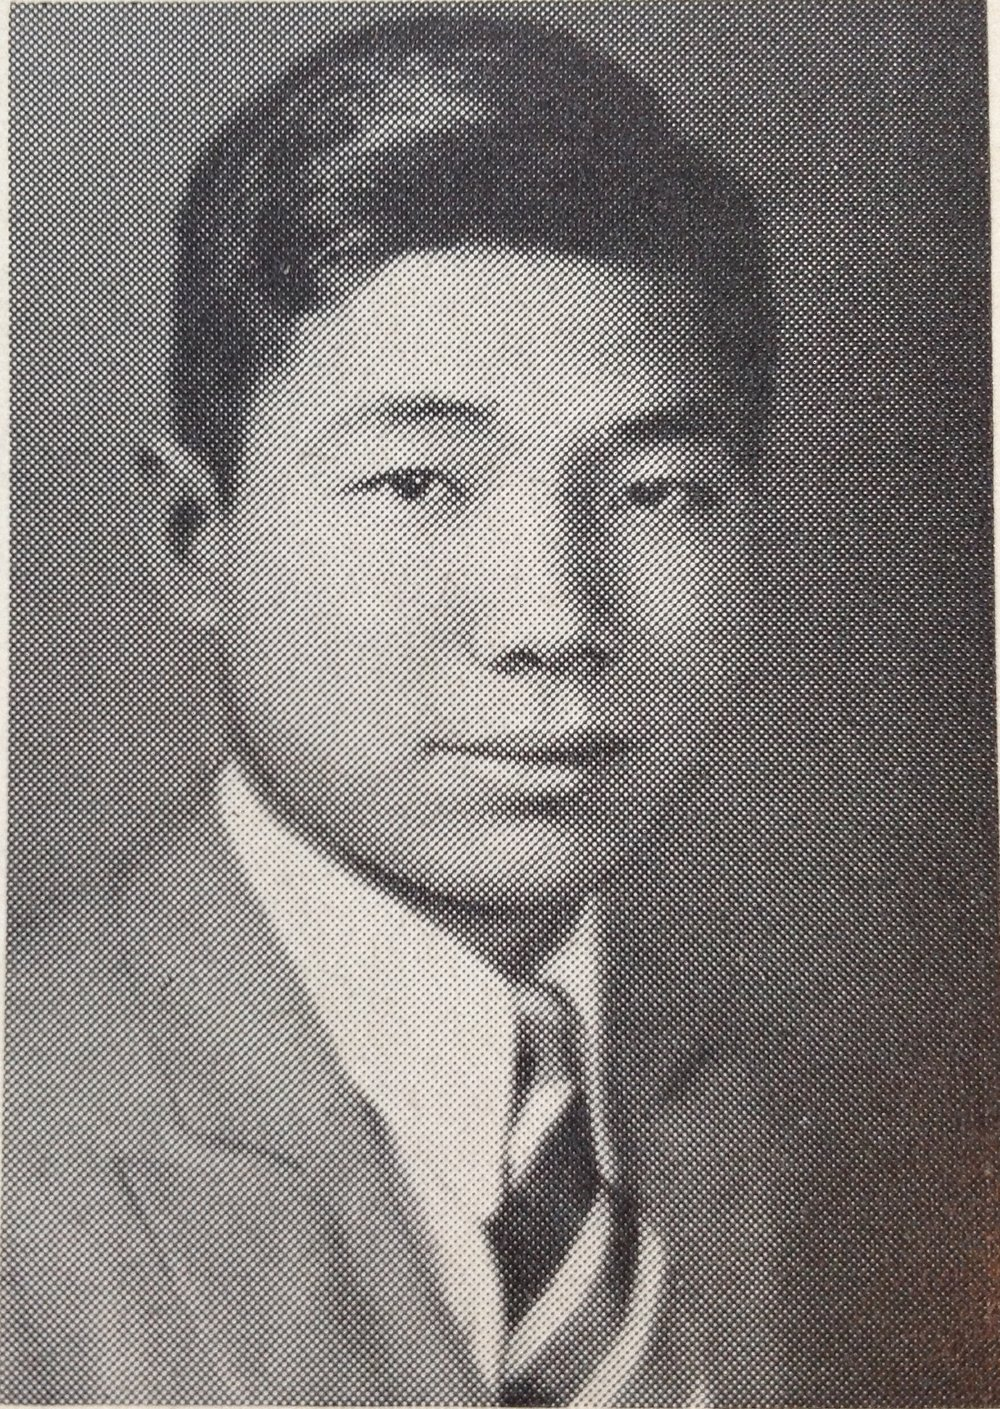 Po Ting Ip, MIT Technique 1934. Courtesy MIT Archives and Special Collections.